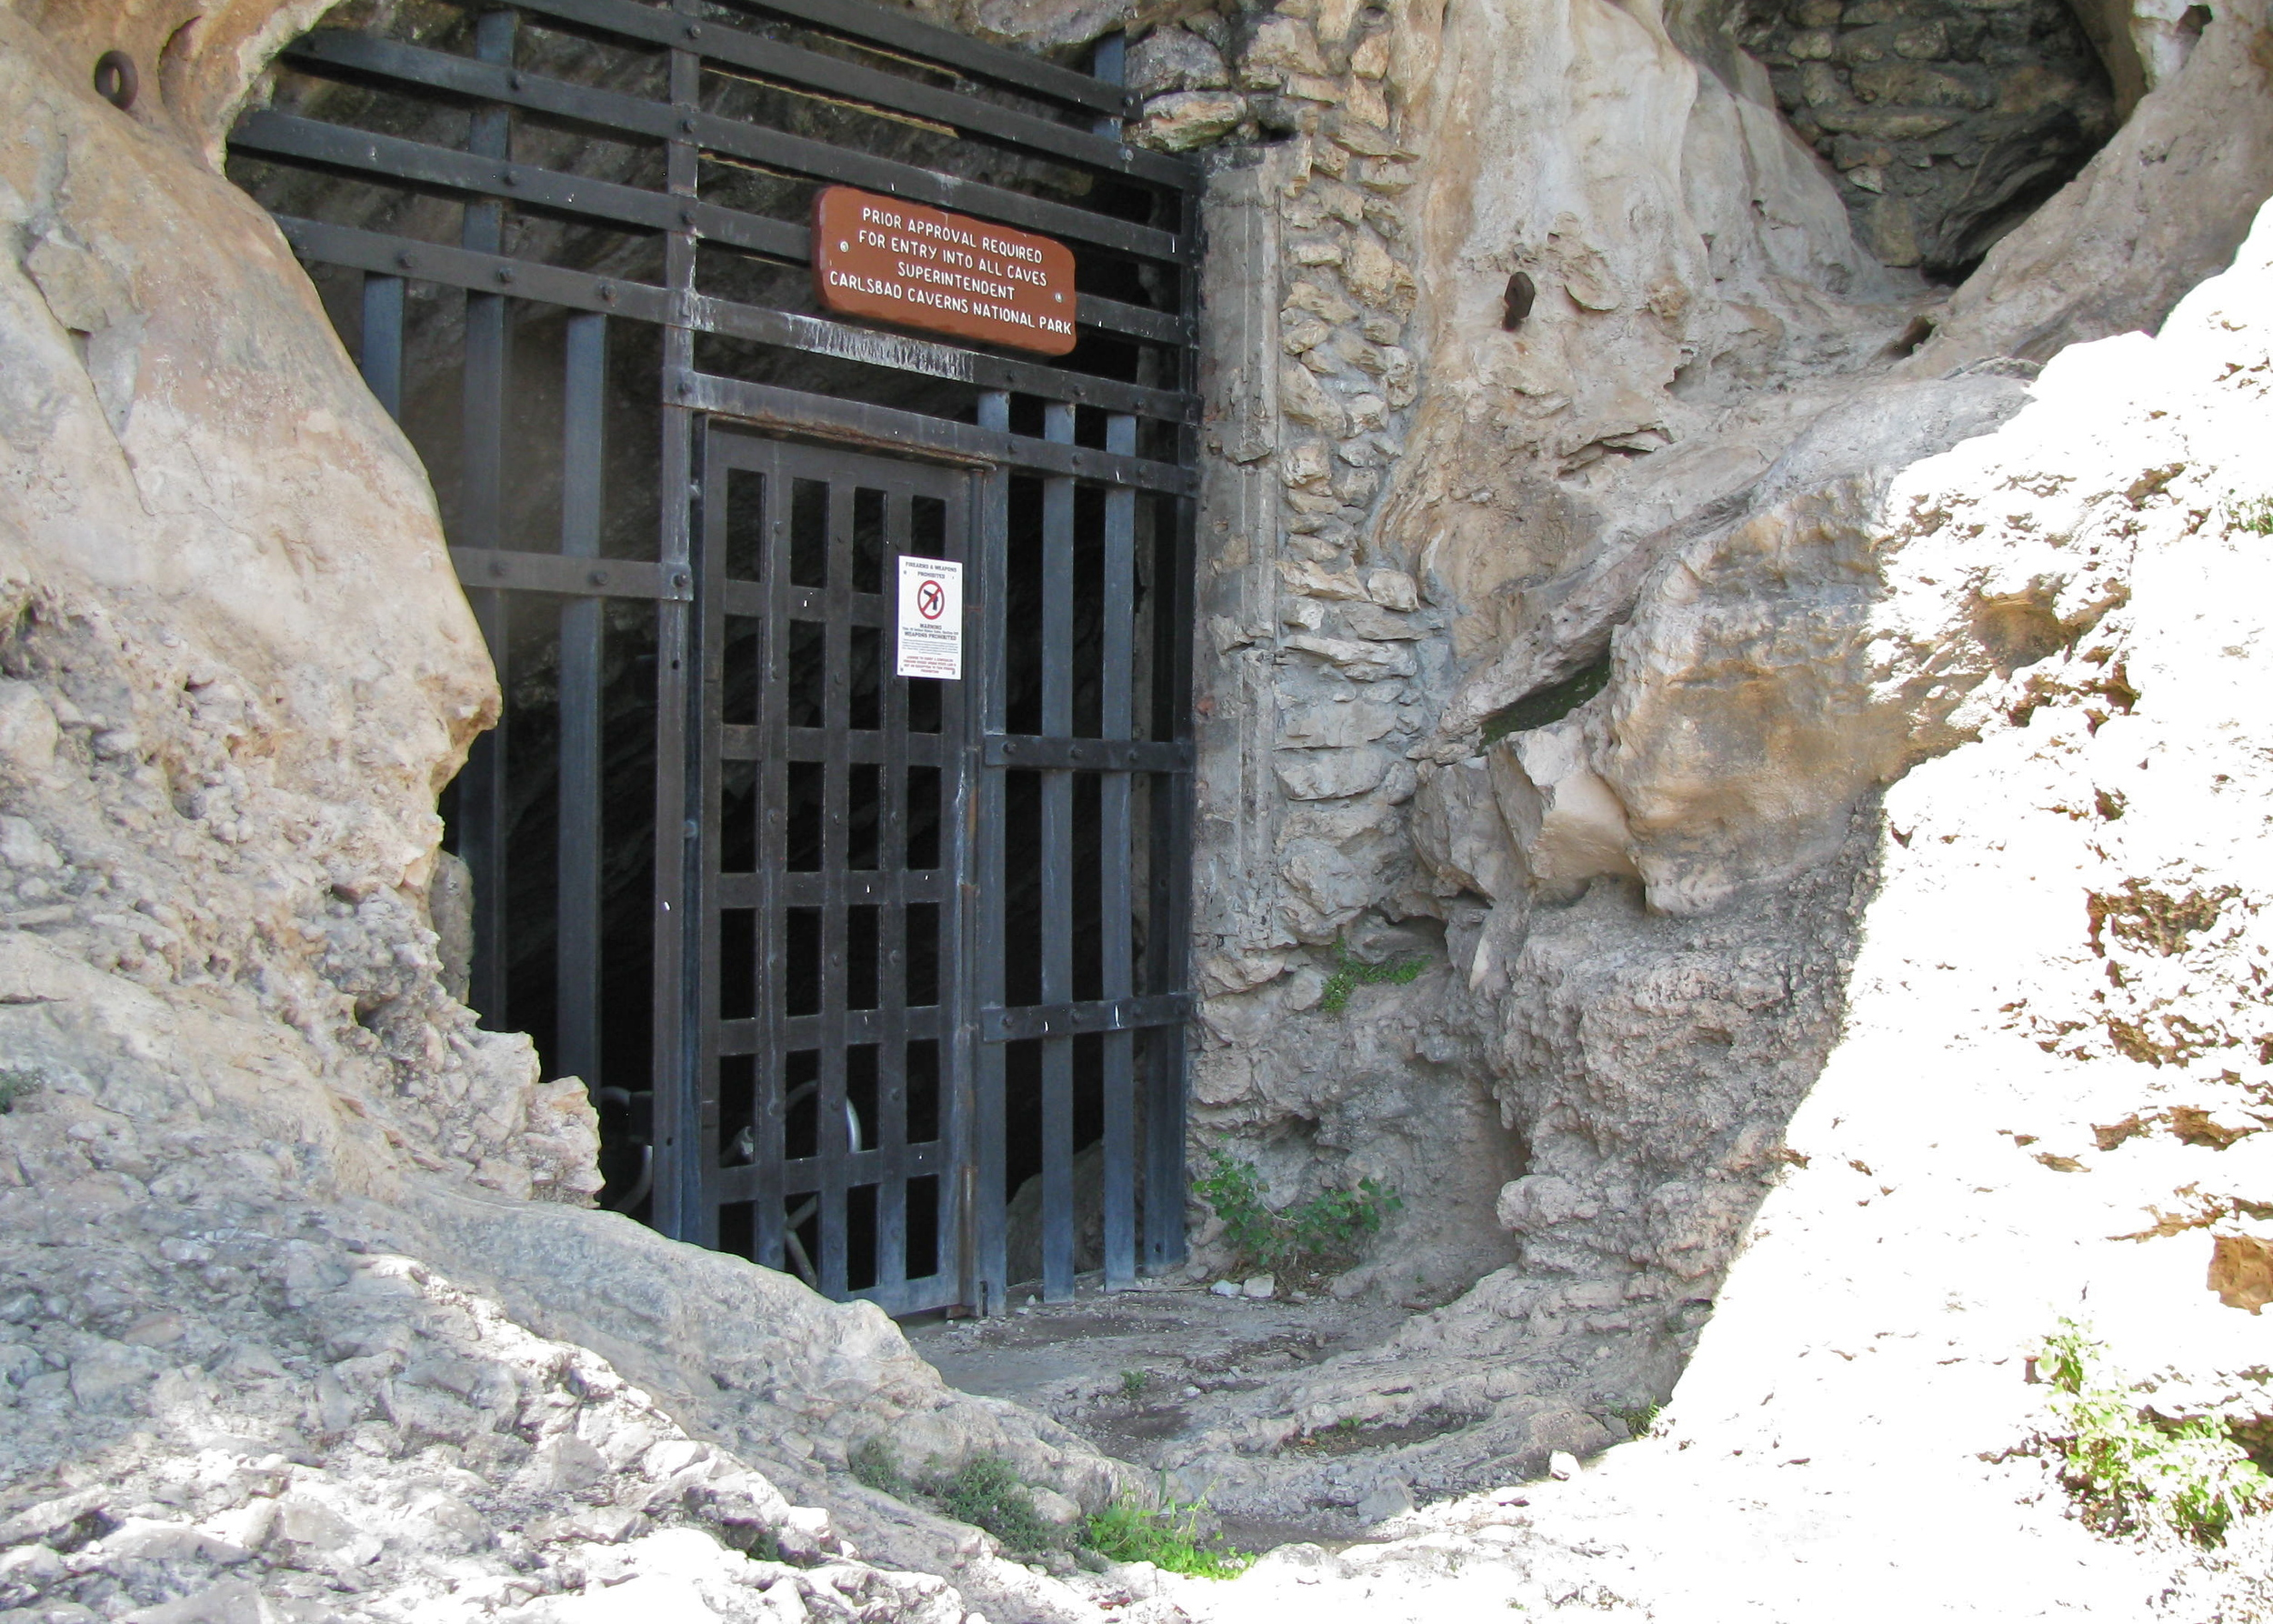 Slaughter Canyon Cave entrance